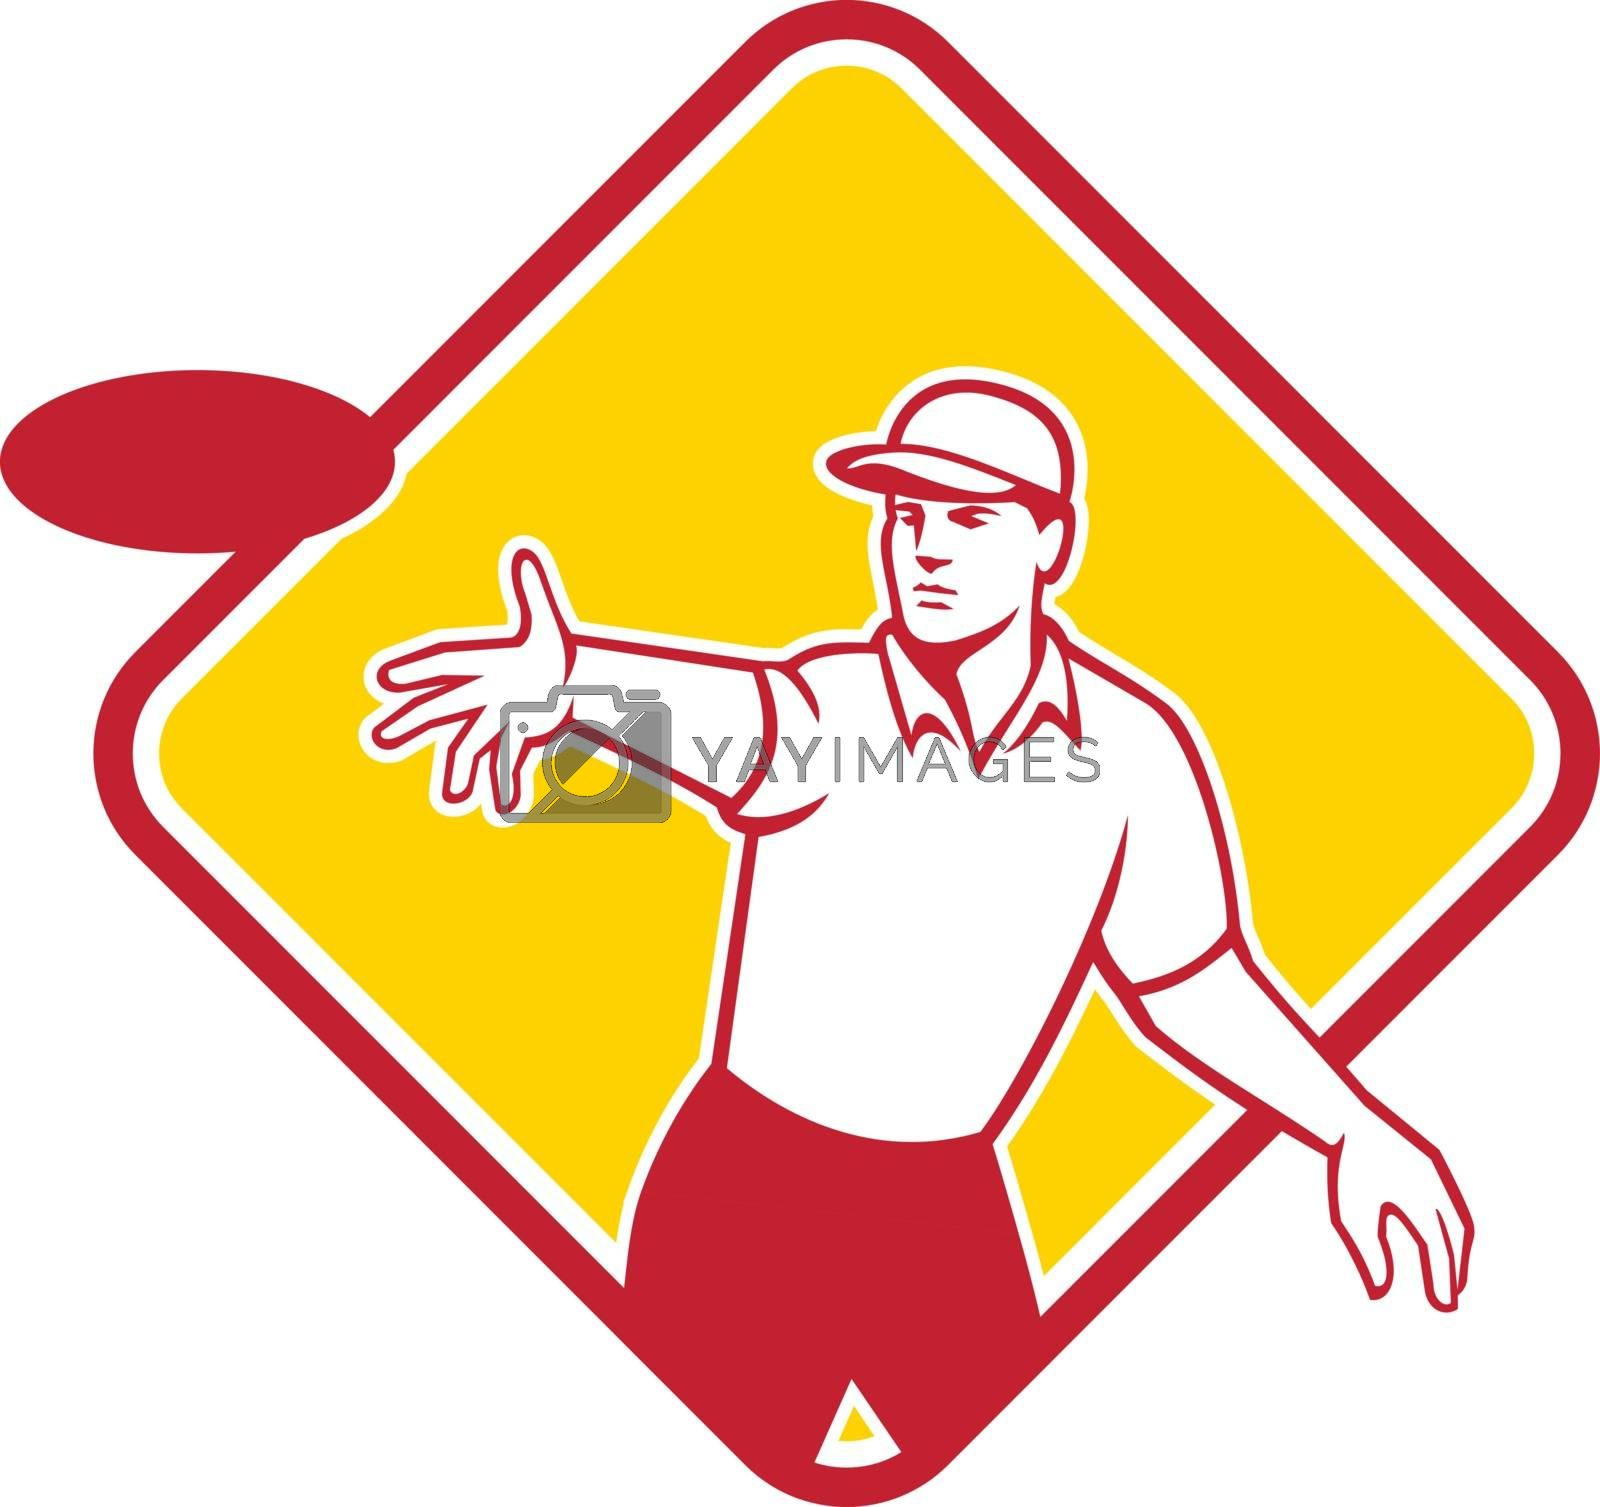 Mascot icon illustration  of an disc golf player throwing a flatball or frisbee set inside diamond shape viewed from front on isolated background in retro style.